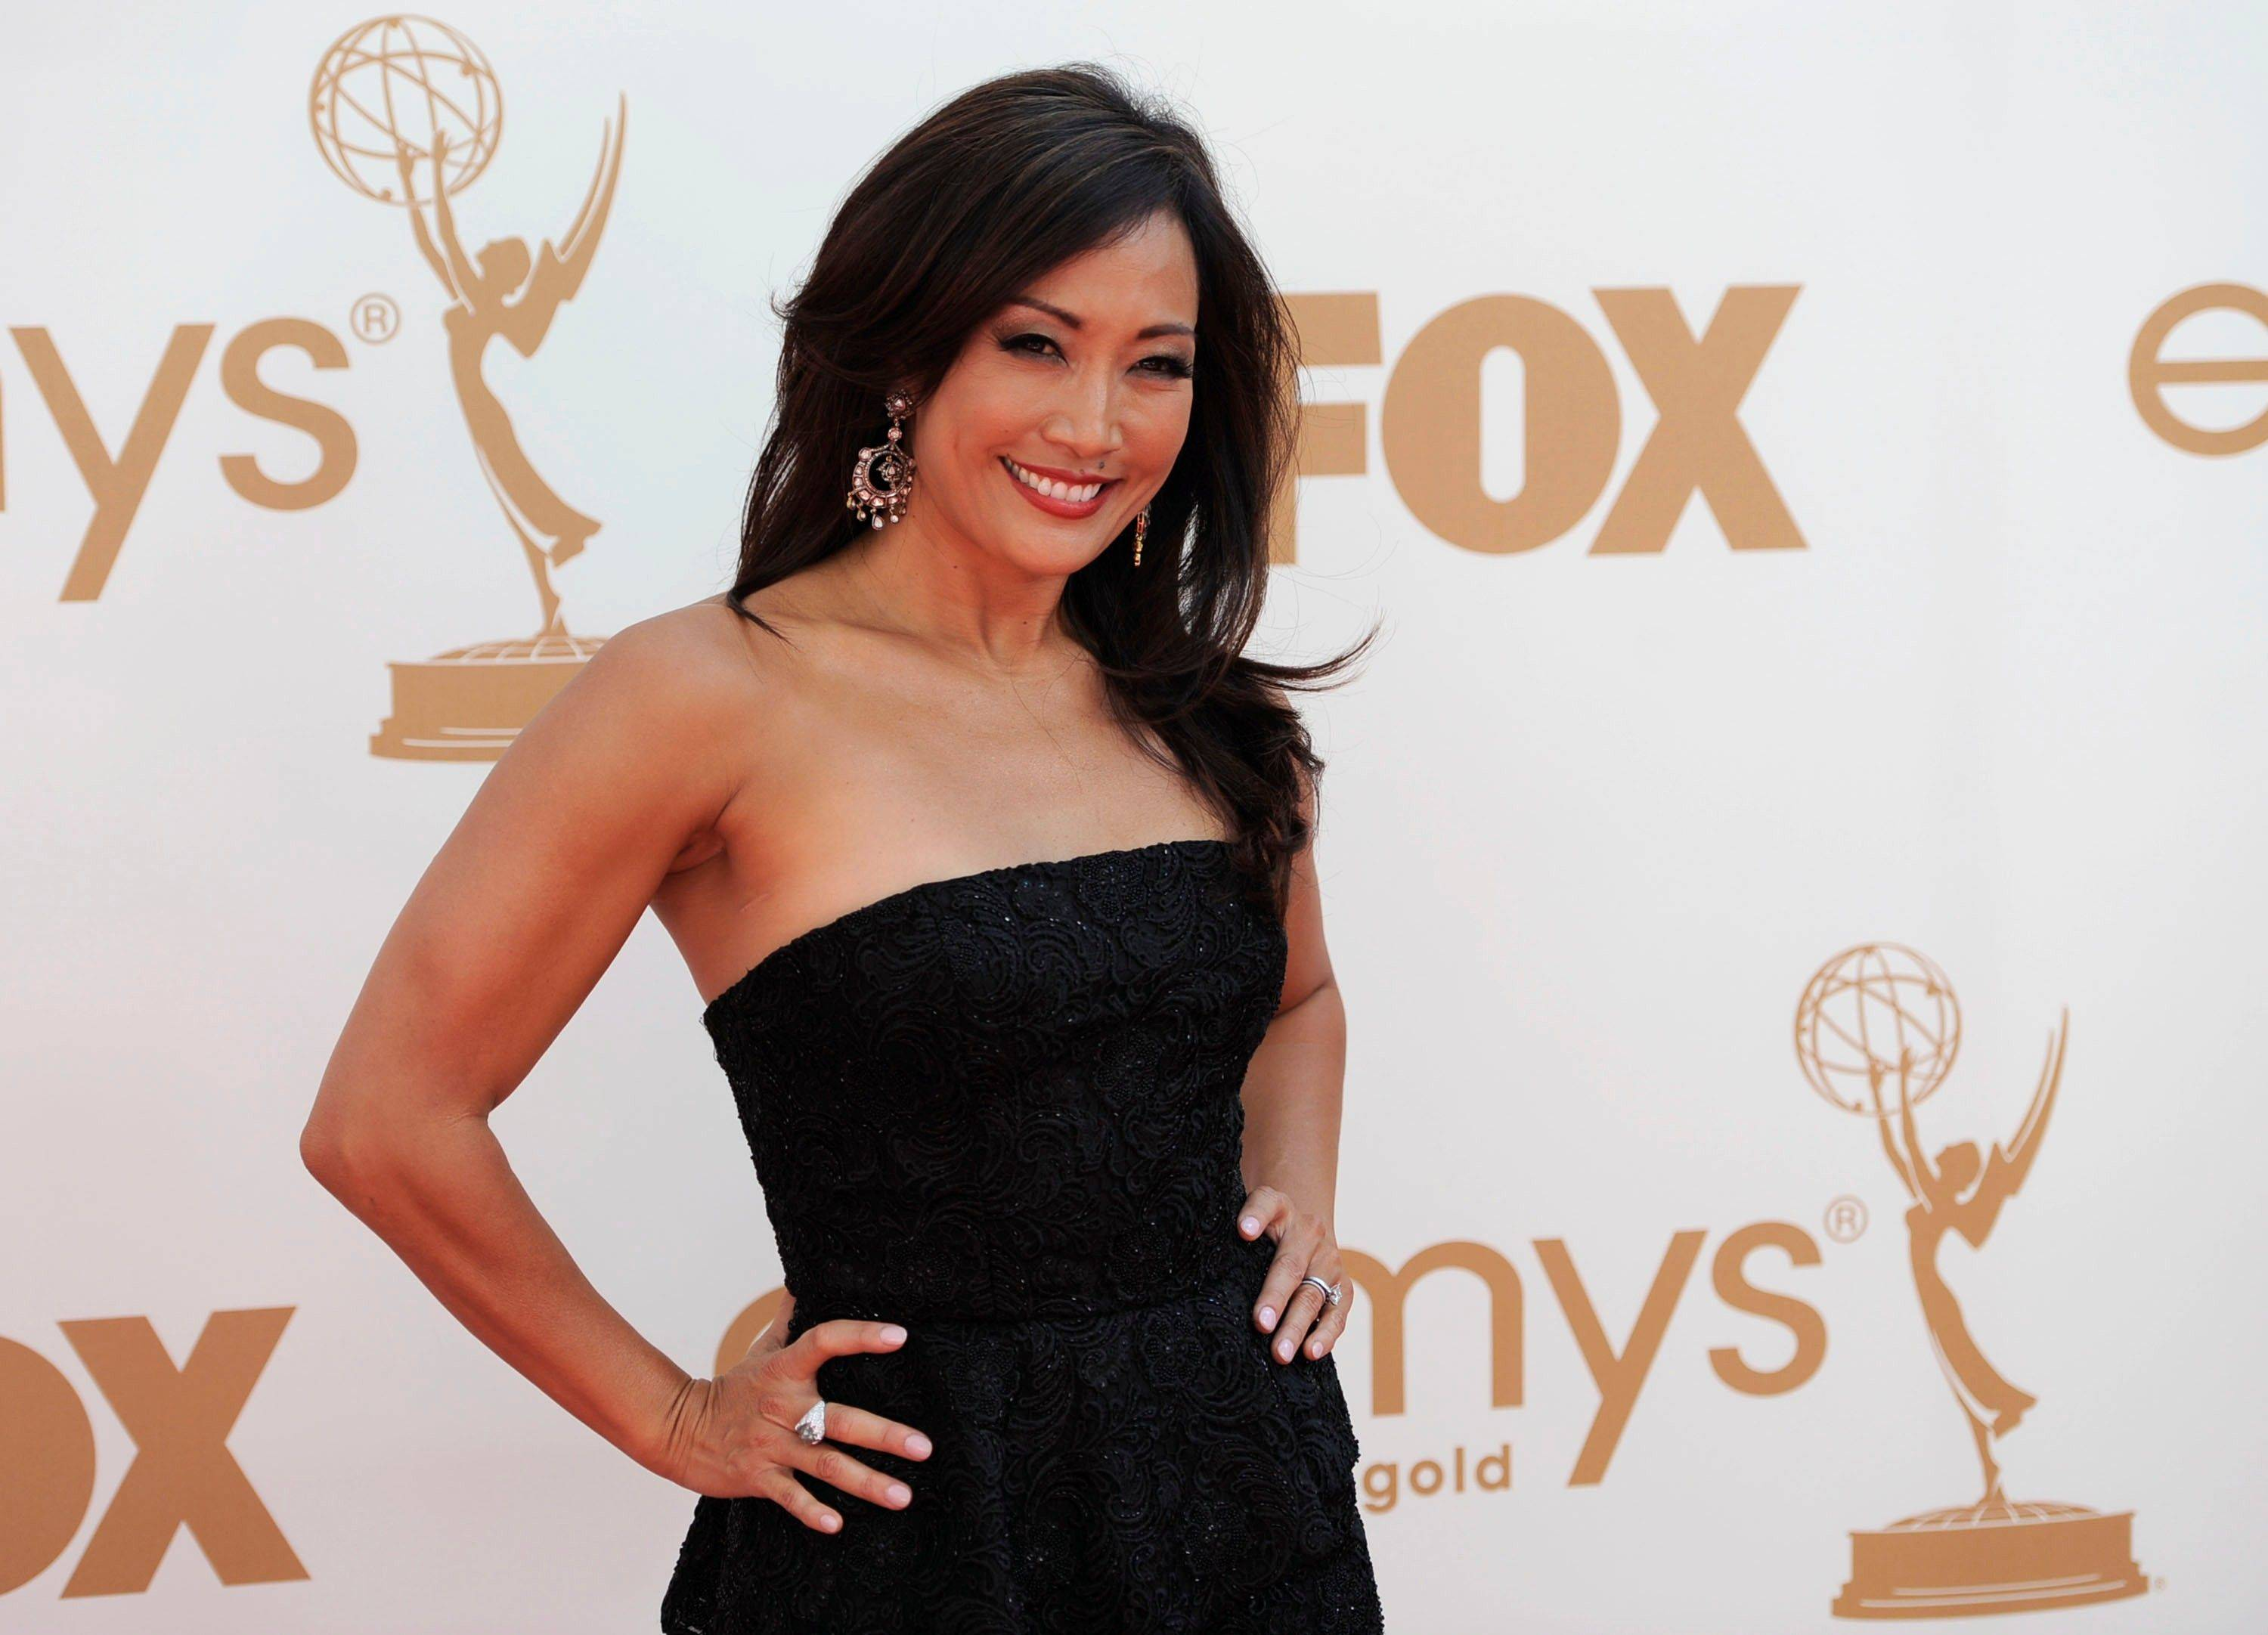 """Dancing with the Stars"" judge Carrie Ann Inaba also follows one of the evening's other trends with a dark strapless gown."